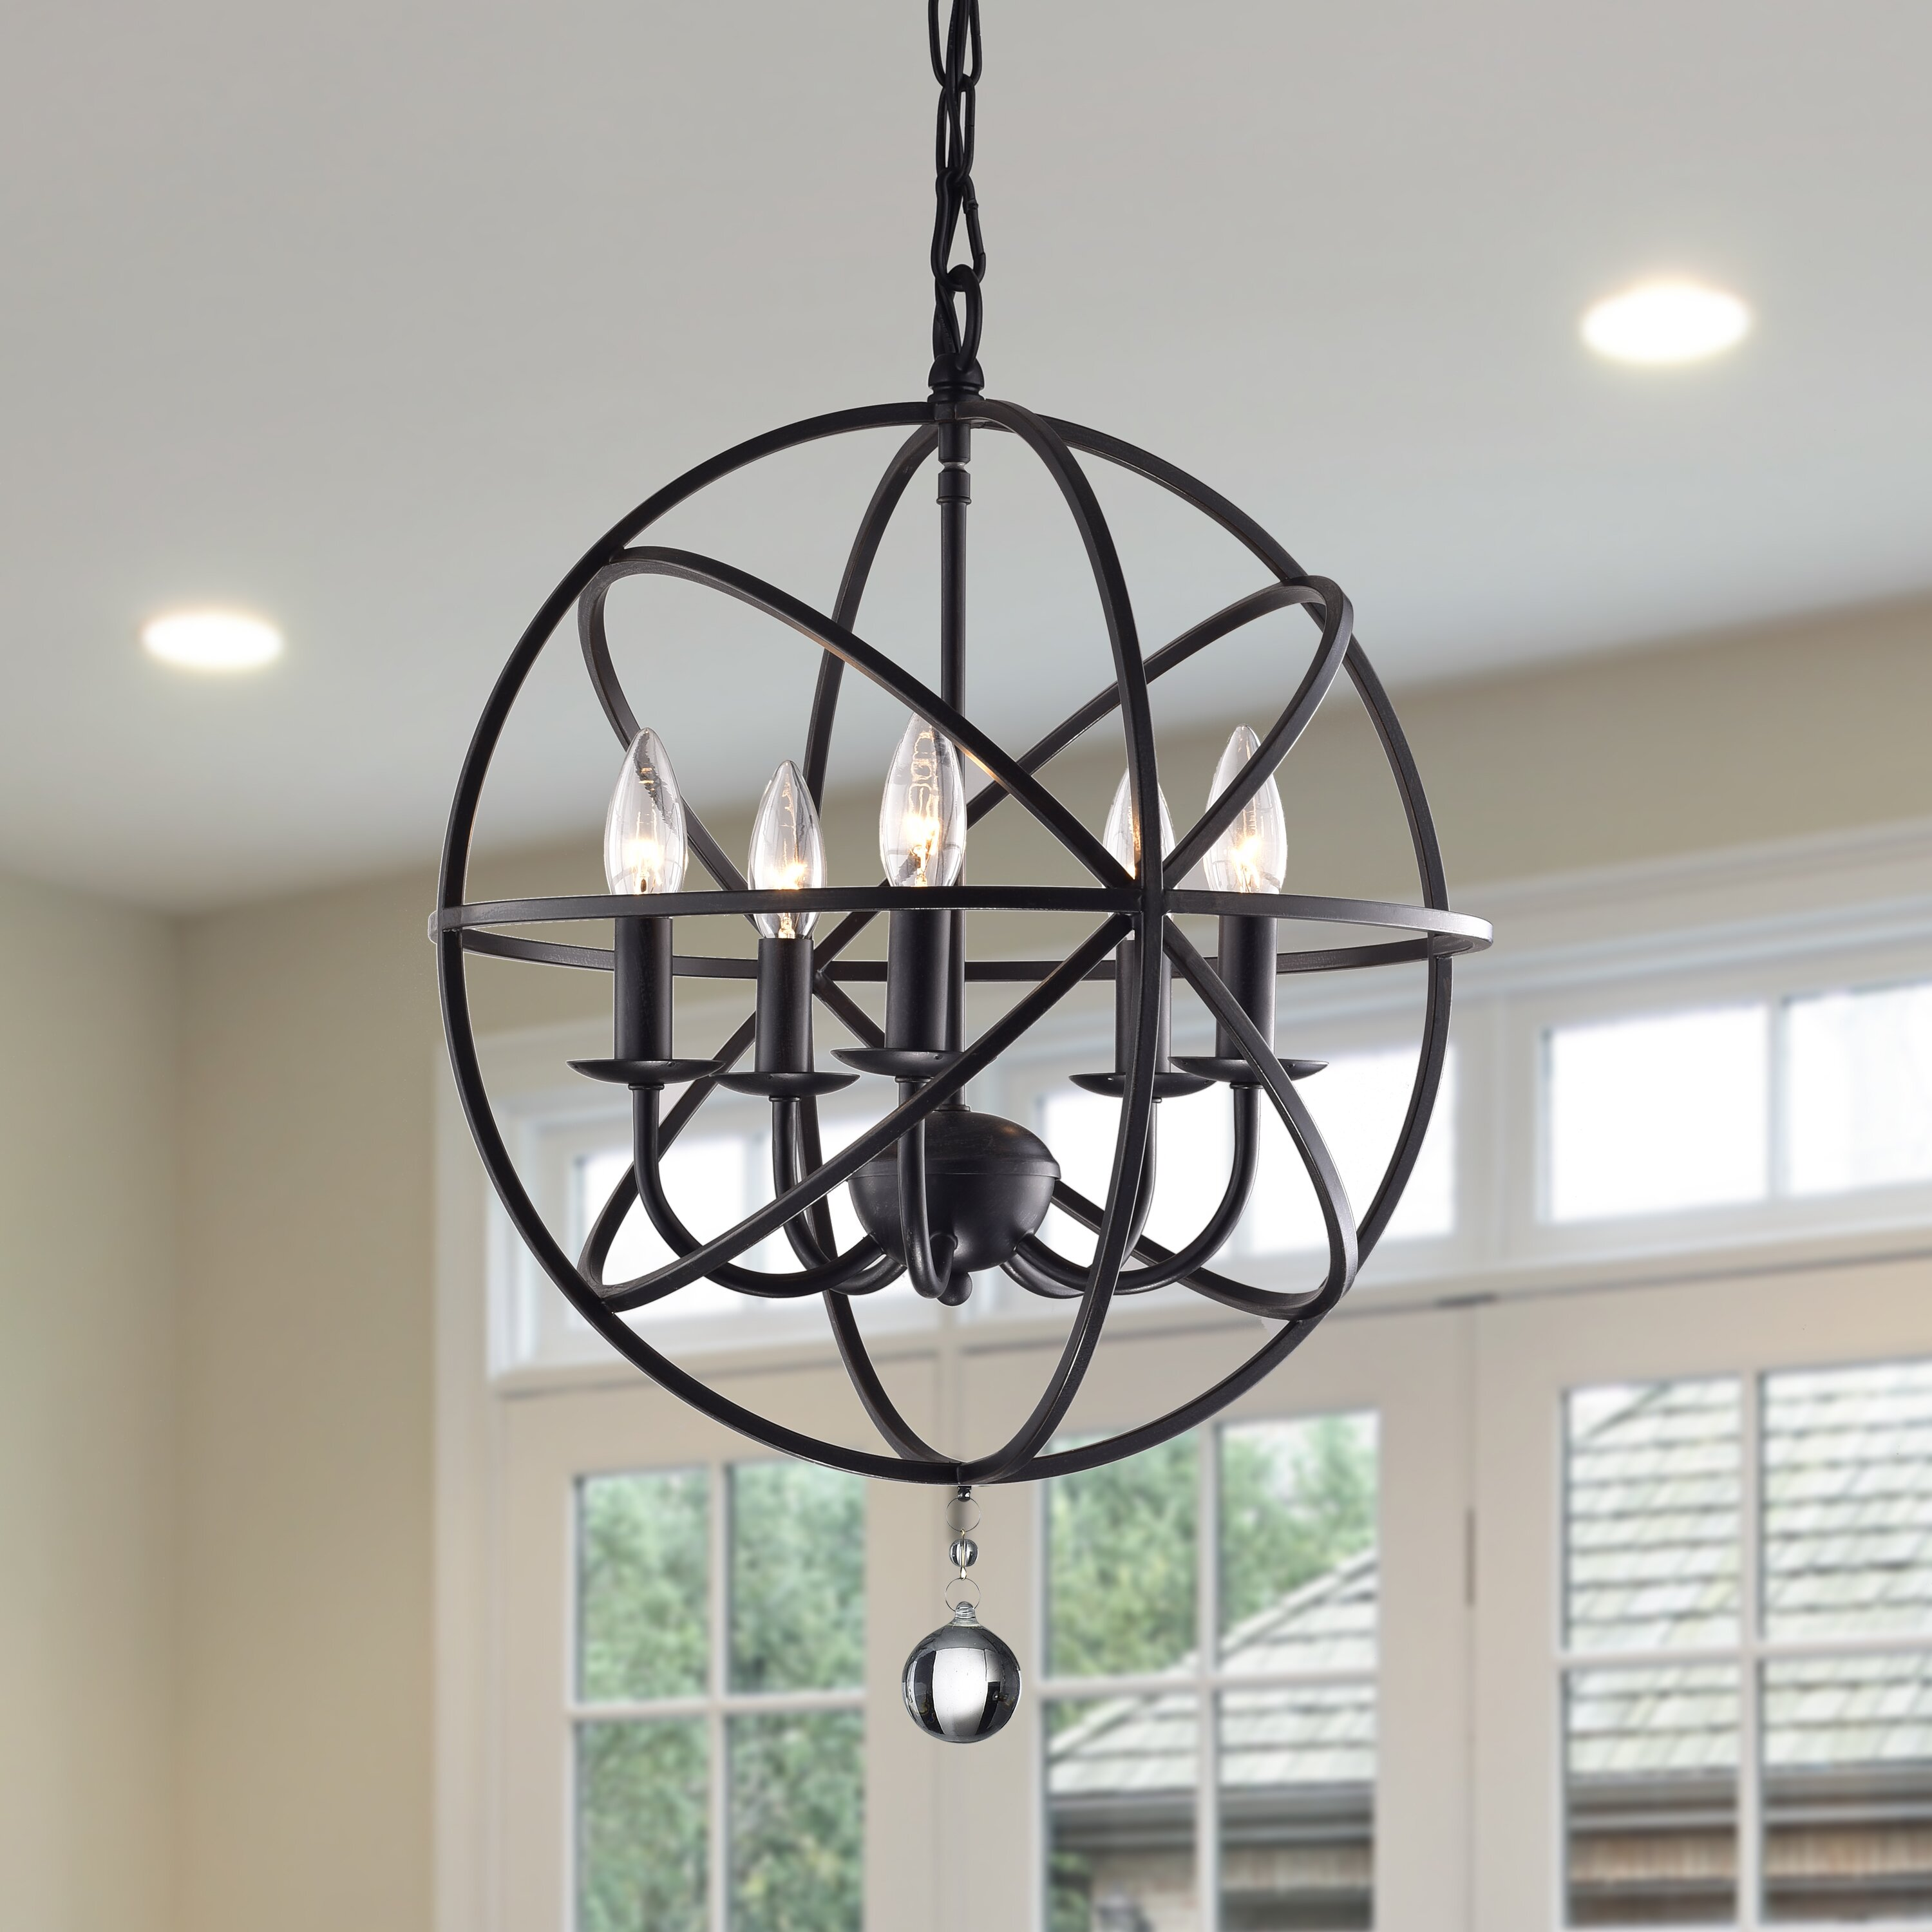 wellyer notus 5 light foyer pendant reviews wayfair. Black Bedroom Furniture Sets. Home Design Ideas